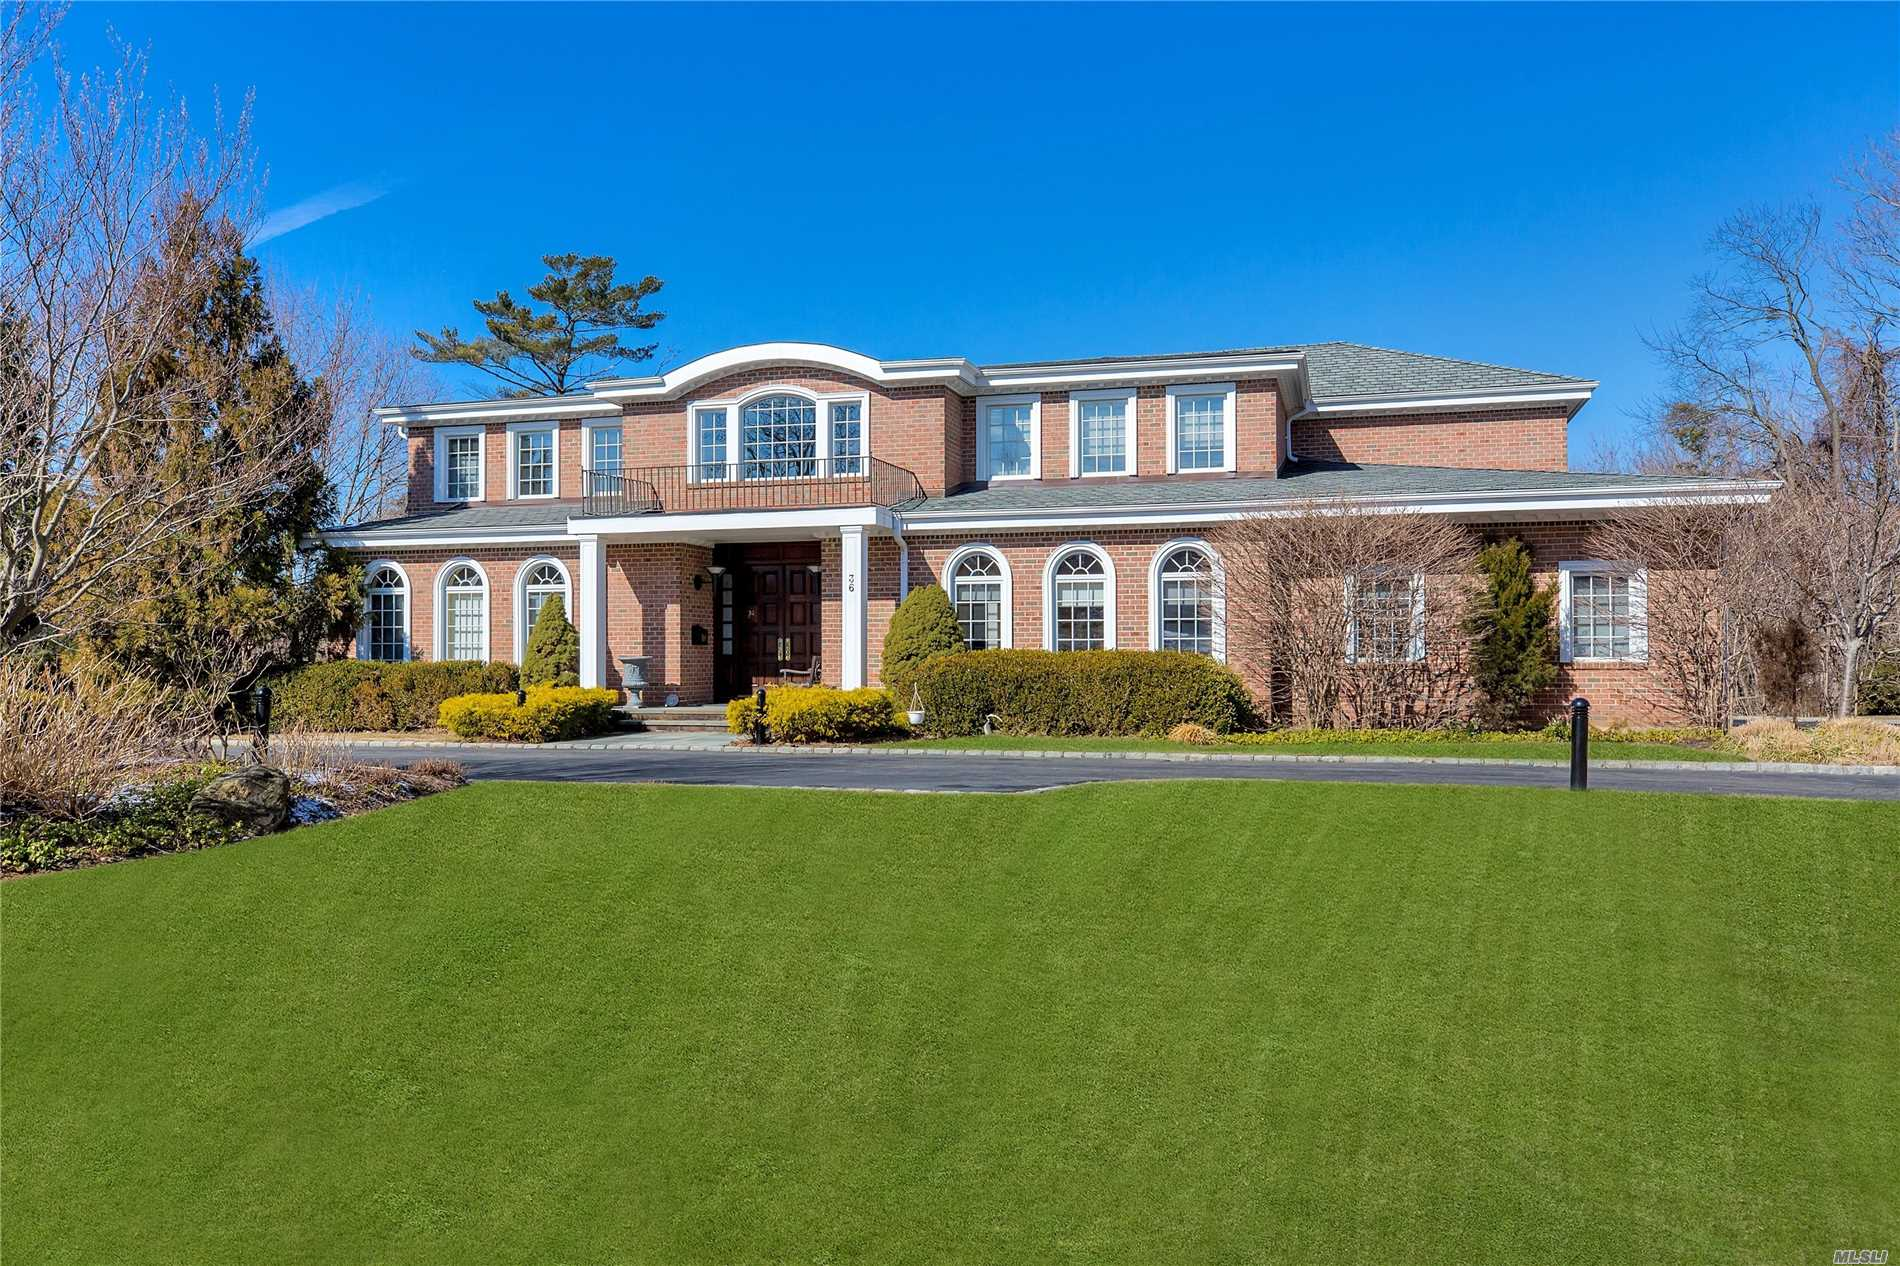 Spectacular Kings Point Colonial On Premier West Side Block- Sun Filled Home With Grand Sized Rooms For Fabulous Entertaining And Family Living. 1st Time On The Market, Built For Owner In 2005 With Finest Of Materials, Elevator,  Soaring Ceilings, Surround Sound System 7 Bedrooms, 6 Baths, Acre, Full Basement & Circular Driveway. Ask For All Home Details